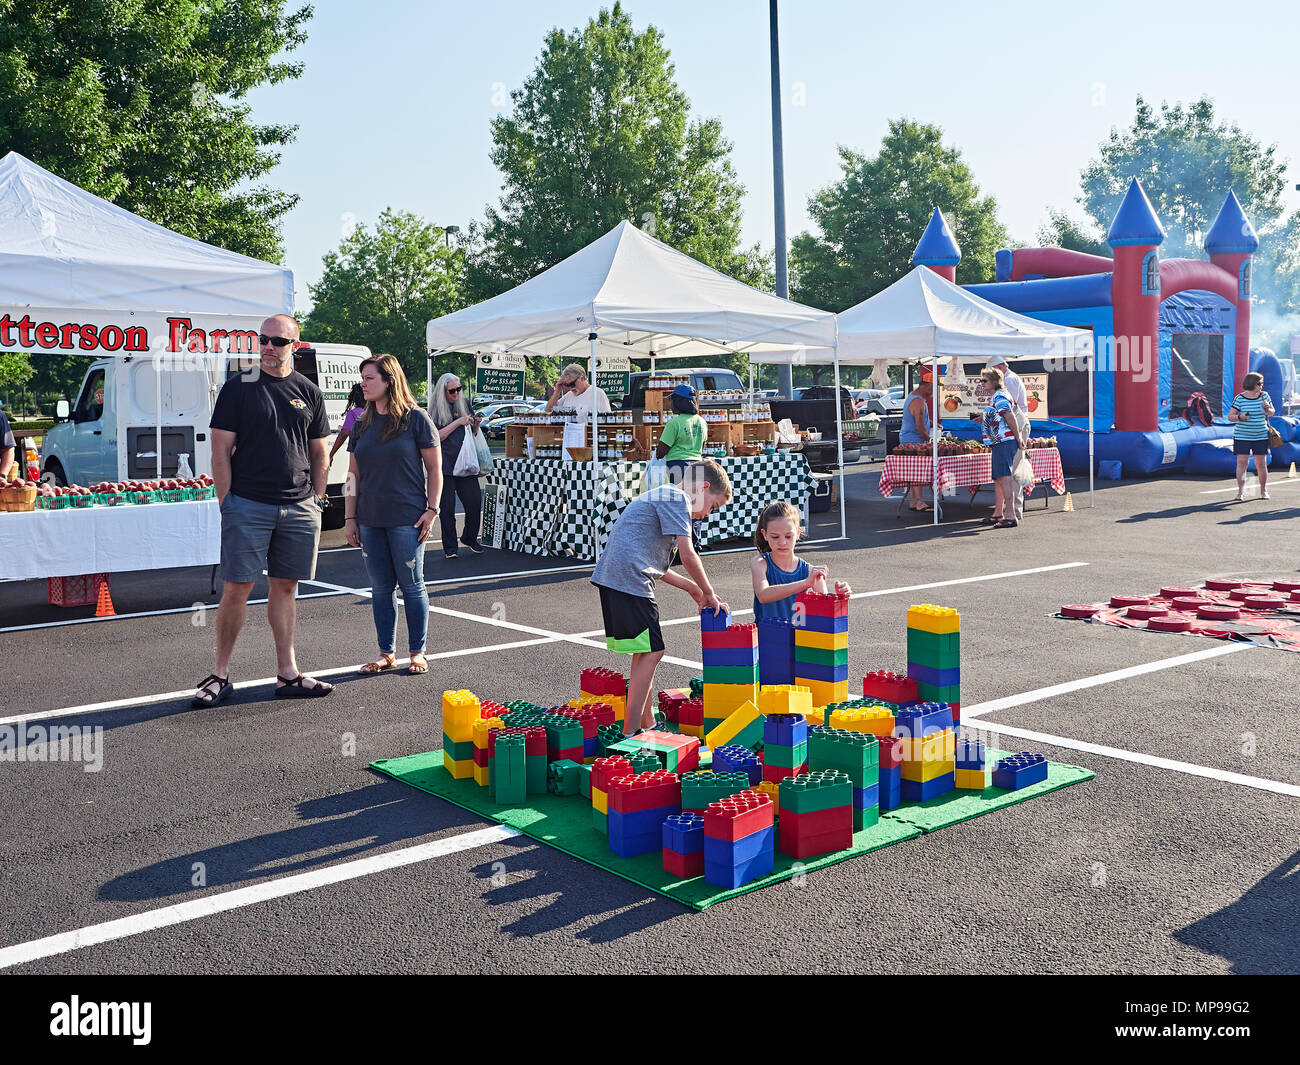 Boy and girl children play or playing with giant Lego blocks at a family fun farmer's market with their parents watching in Montgomery Alabama, USA. - Stock Image